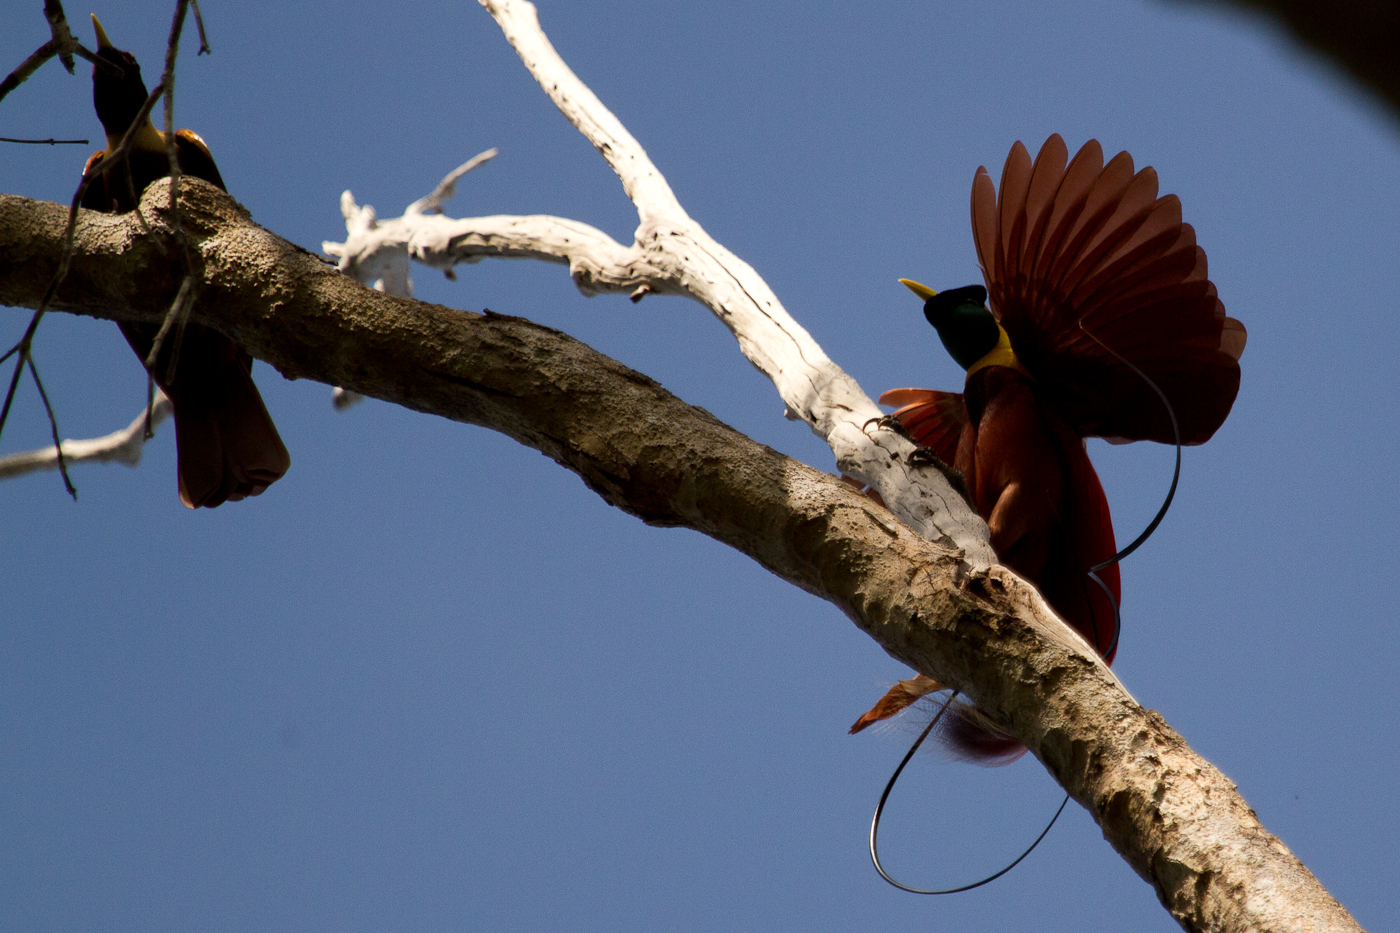 Get that female! A Red Bird of Paradise swoops in to start his courting dance. Raja Ampat Islands, Papua